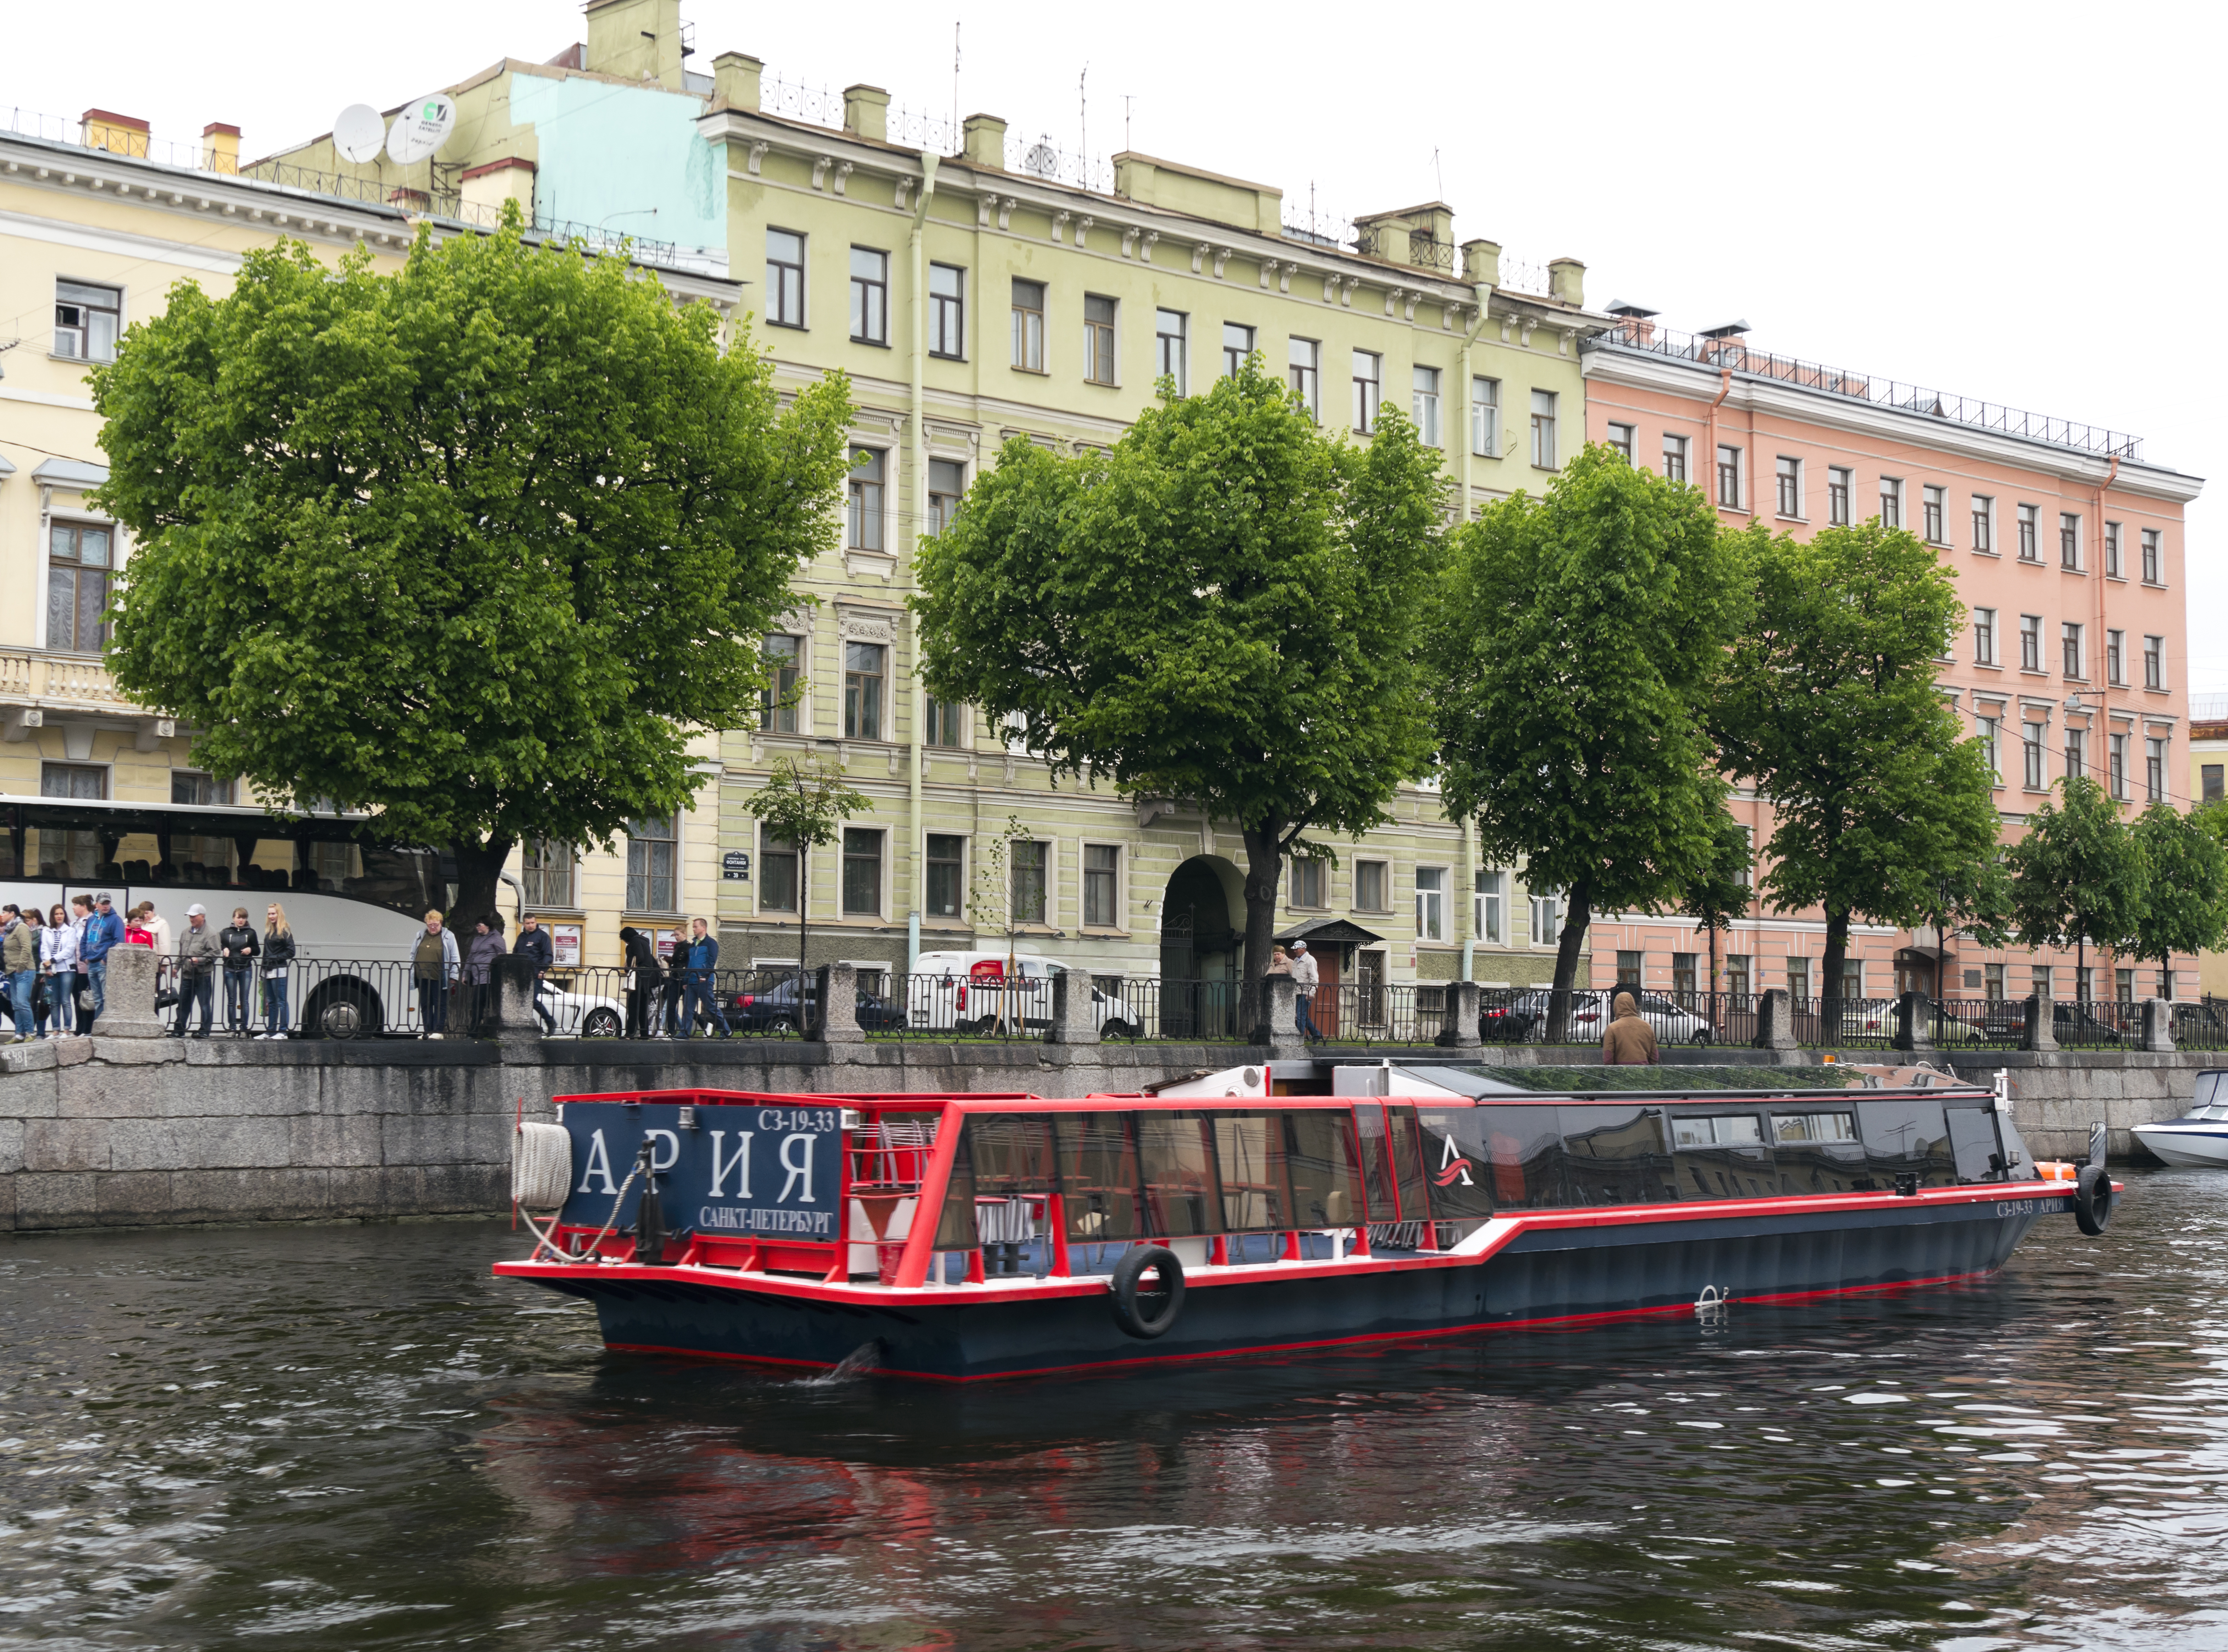 Tourboat in St Petersburg